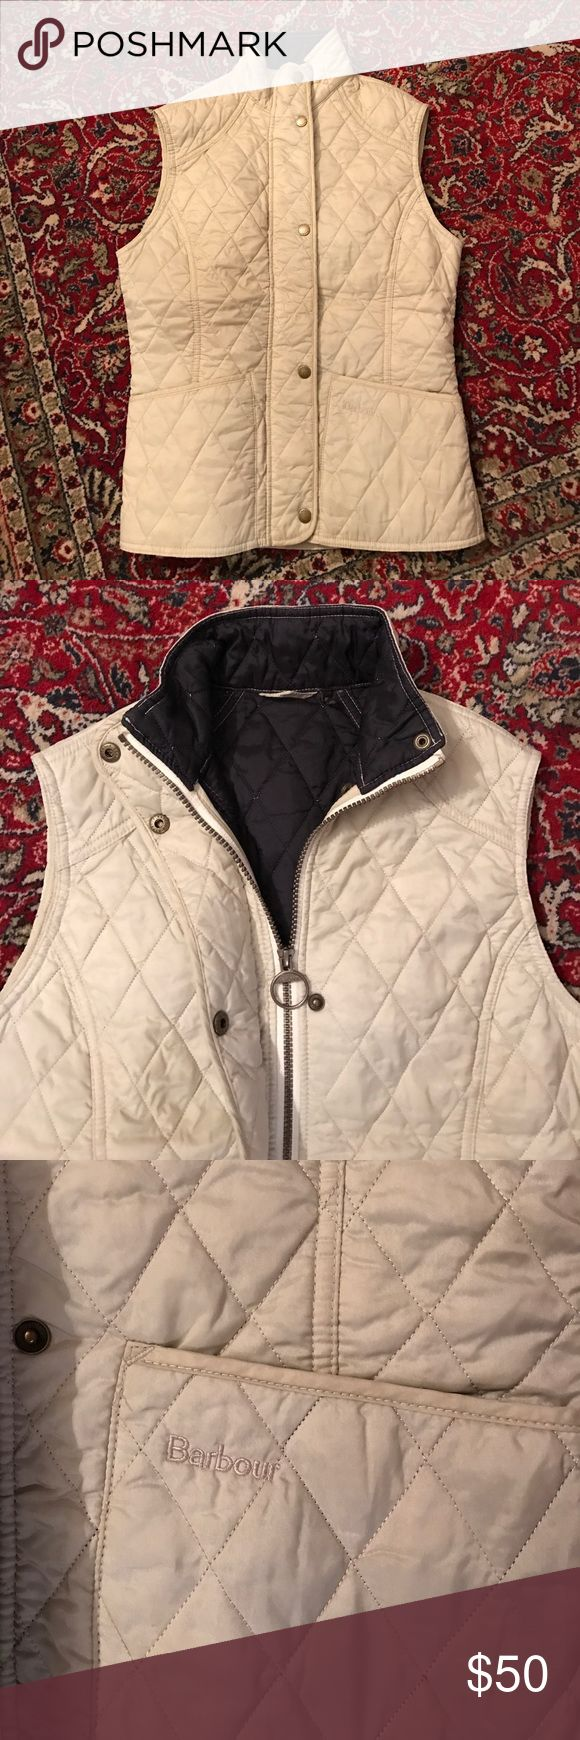 Barbour Vest Great condition, one small mark on back but hardly noticeable (see photo). Barbour Other